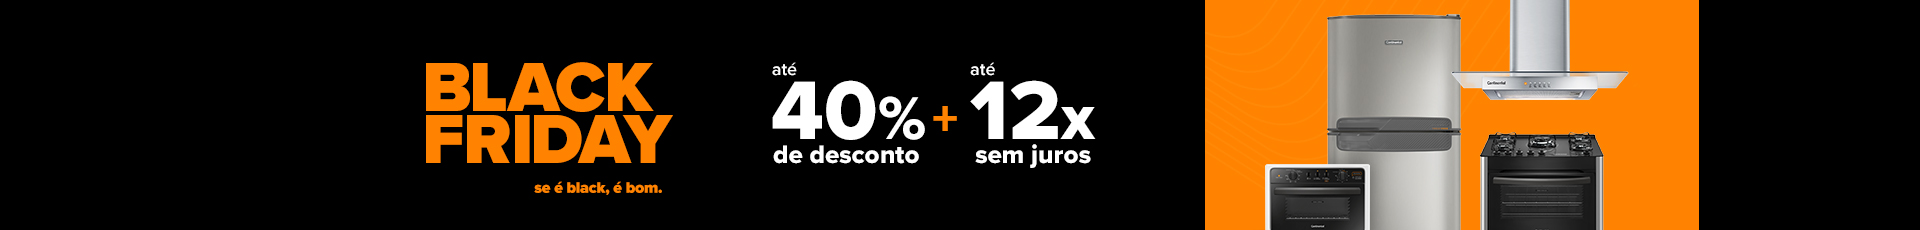 CATEGORIA - BLACK FRIDAY